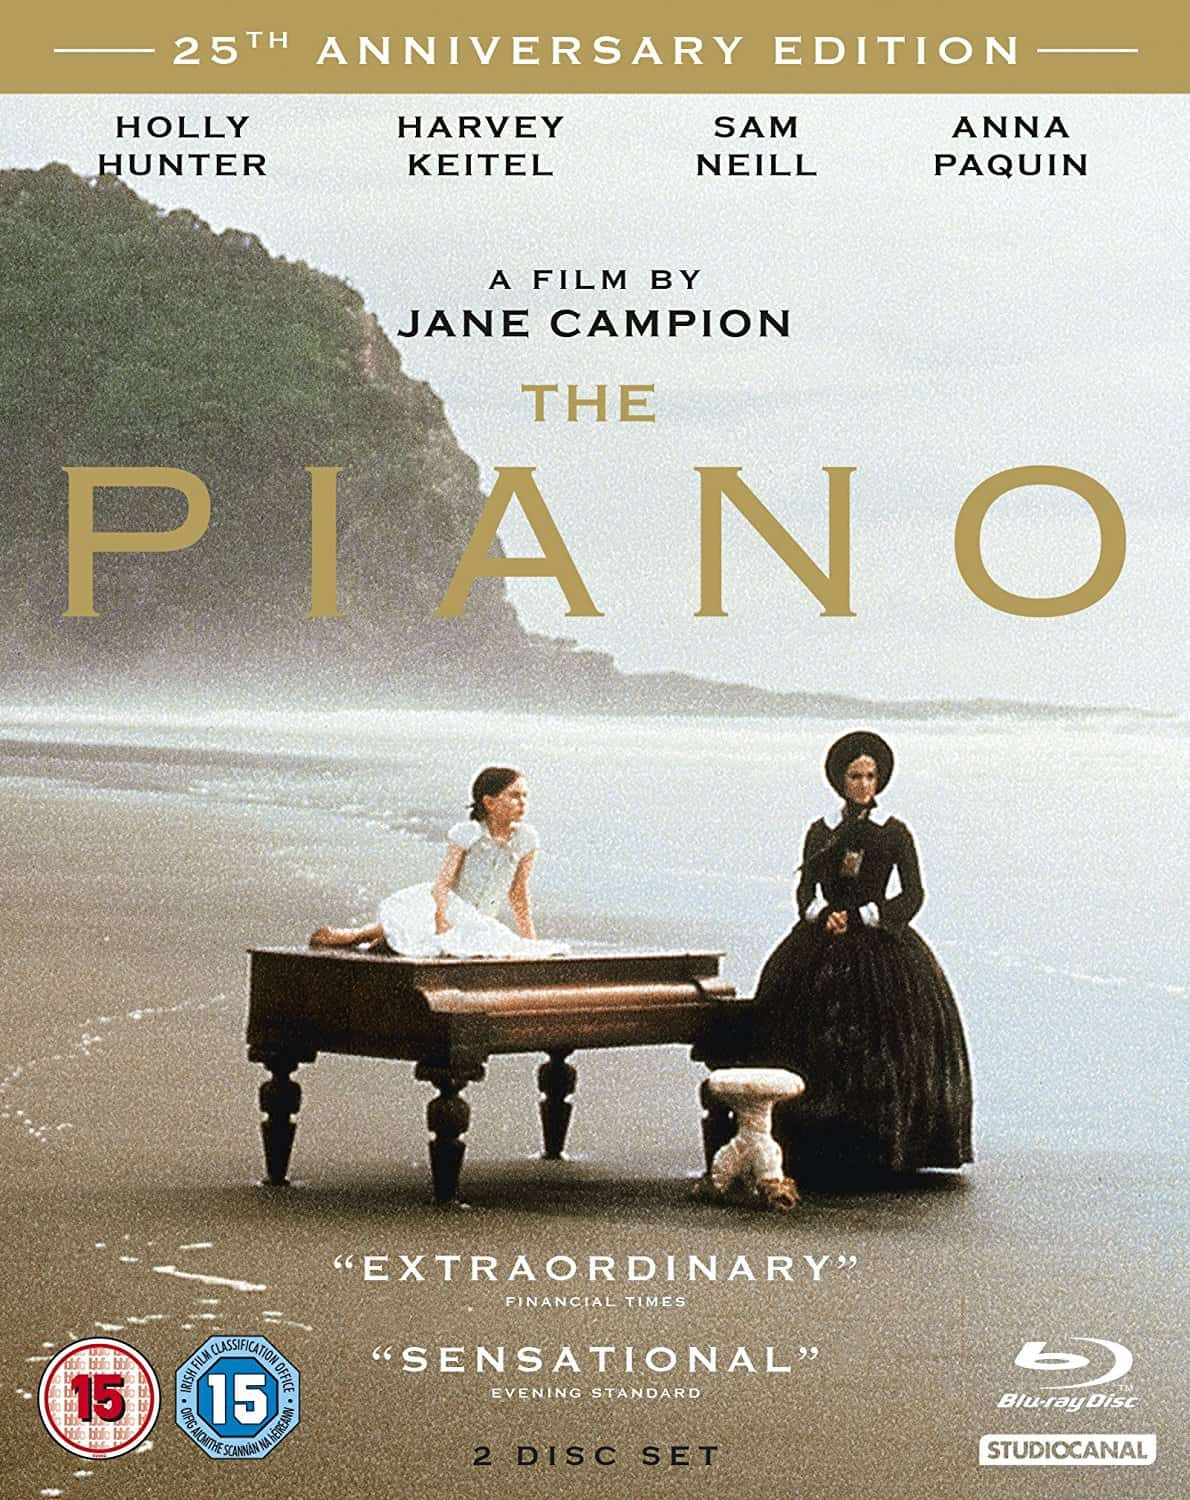 The piano 25th anniversary blu ray review blueprint review director jane campion screenplay jane campion starring holly hunter harvey keitel sam neill anna paquin country new zealand australia france malvernweather Image collections